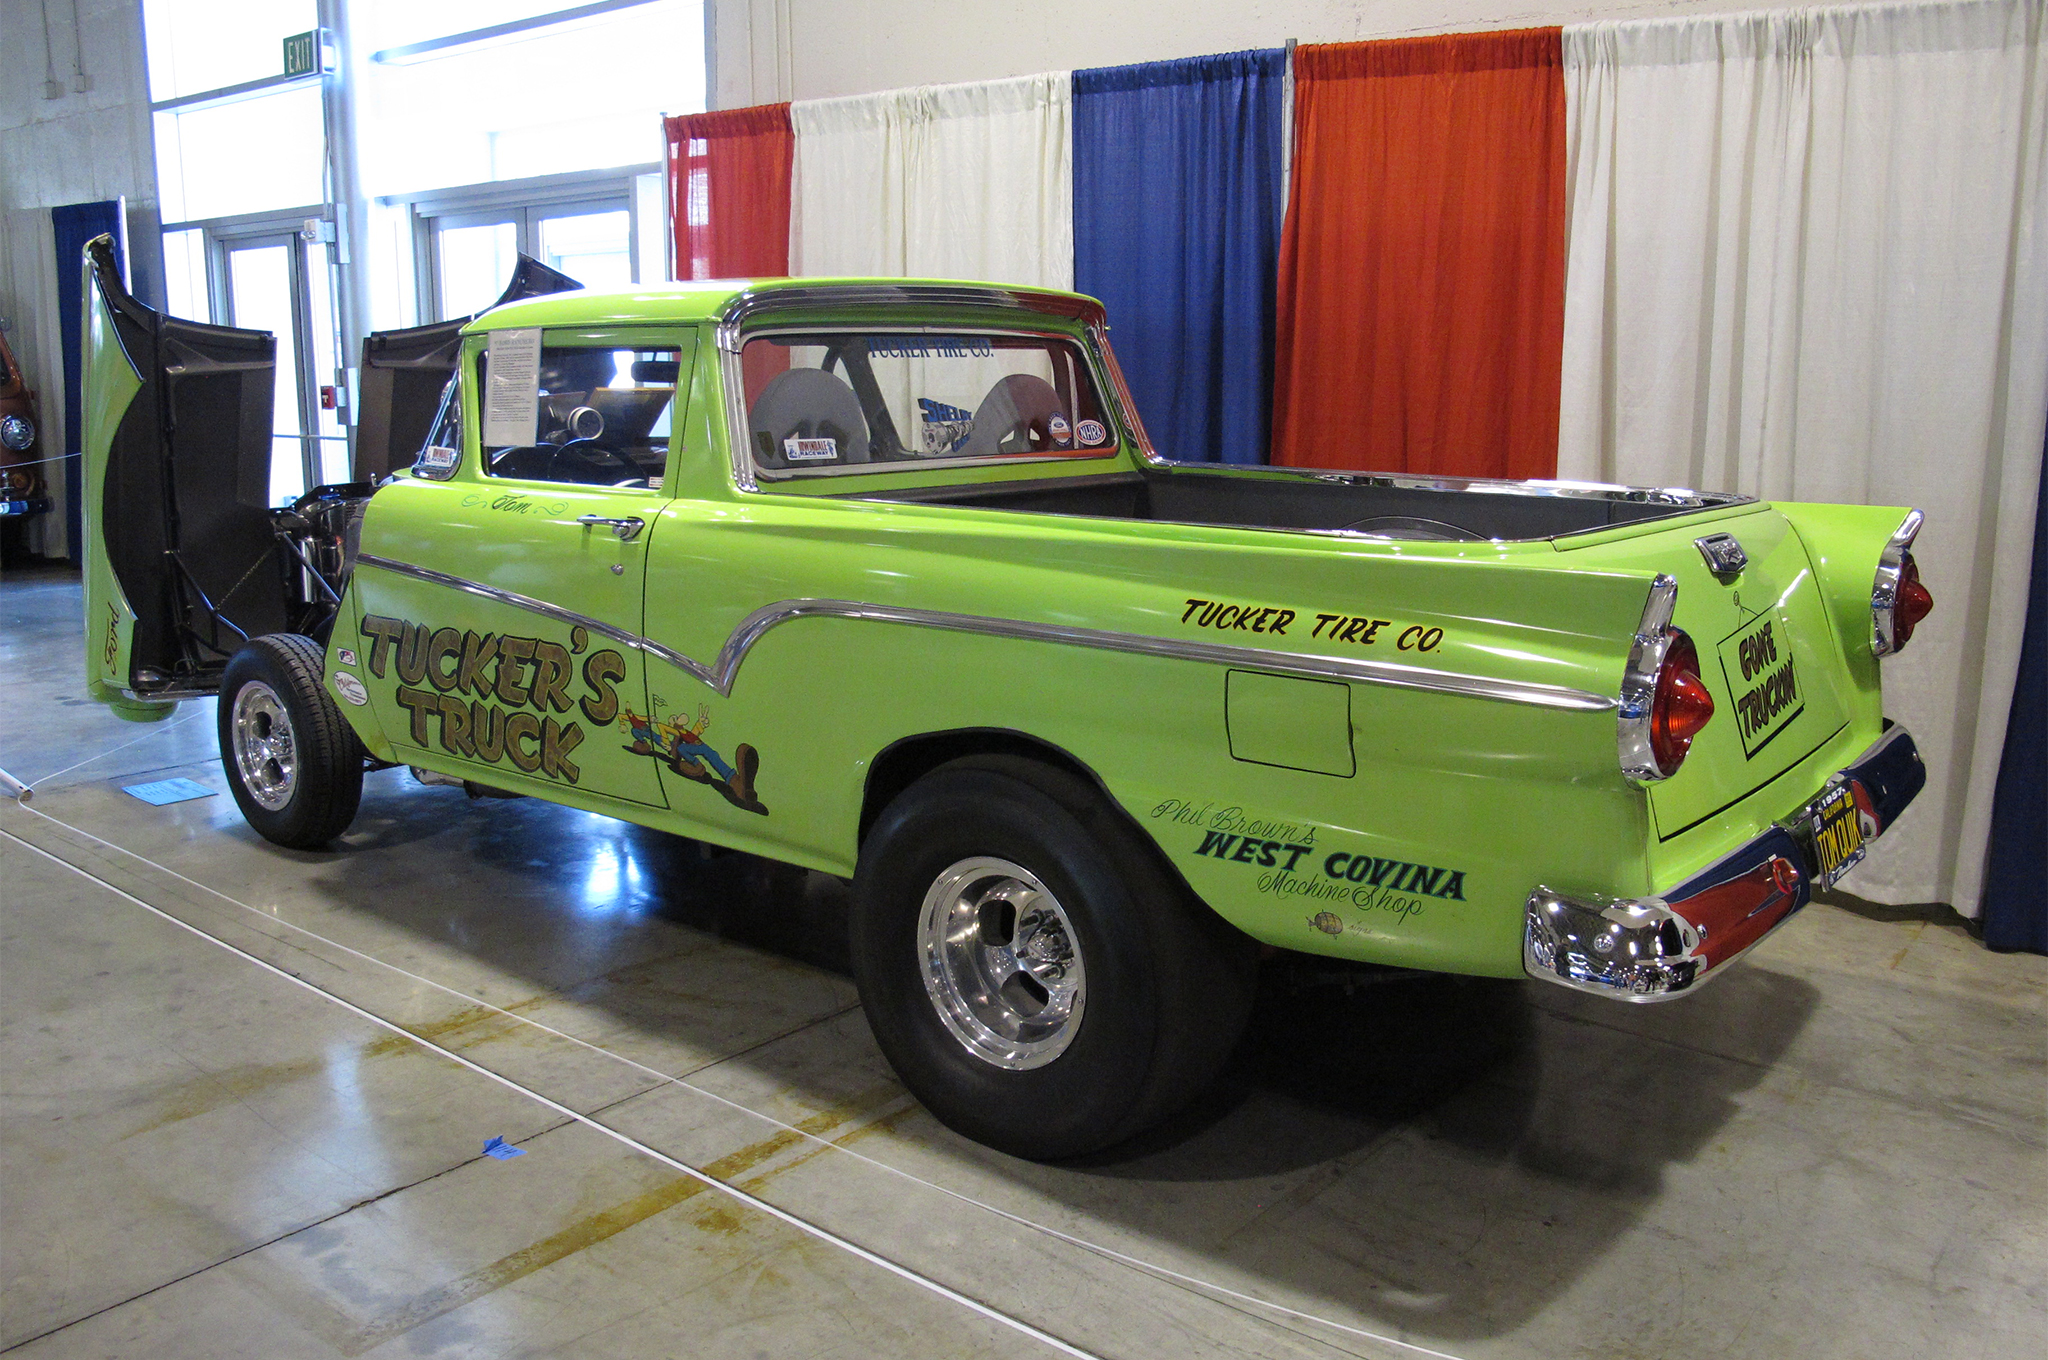 Another not-your-everyday-gasser on display was Tom Tucker's '57 Ranchero, which he bought bone-stock in 1962 and then built to race during the mid- and late '60s. He ran at most of Southern California's strips—Lions, Irwindale, Fontana, and Pomona—turning a best 11.20 at 120 mph. In 2009, he tore down the car/truck and fitted the 427 side oiler with the blower and mechanical injection seen here. It was back on the strip for the first time in 30 years at the 2011 Mooneyes Show.